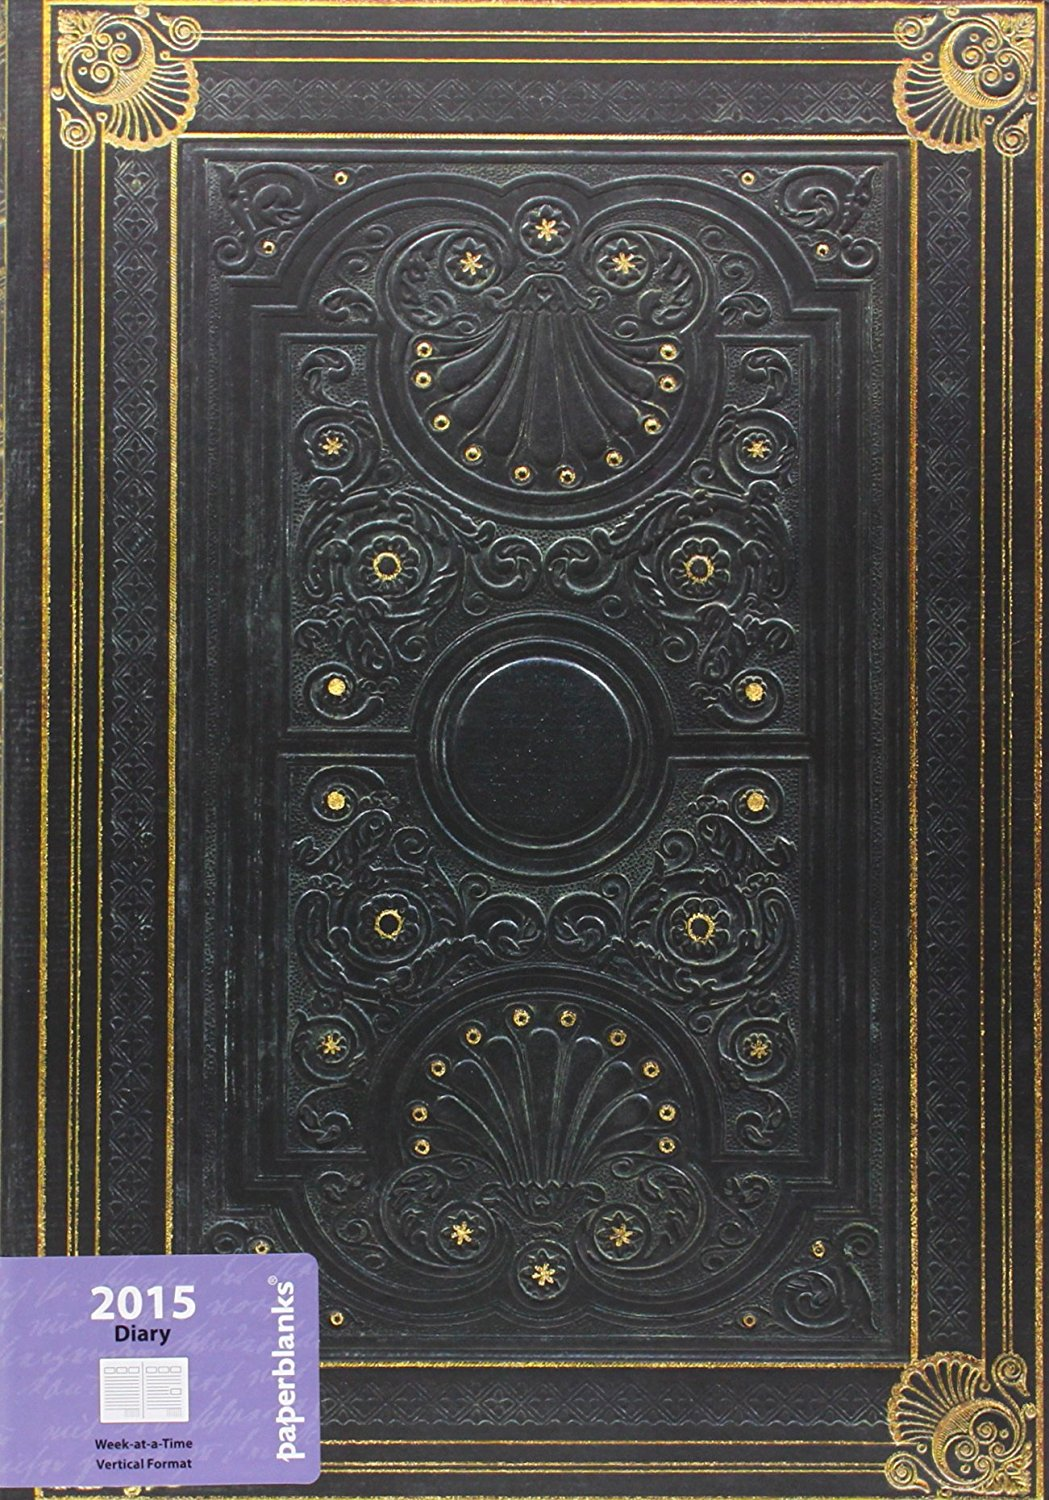 Nocturnelle - Paperblanks 2015 Weekly Planner (Grande 8.25 x 11.75 Vertical)